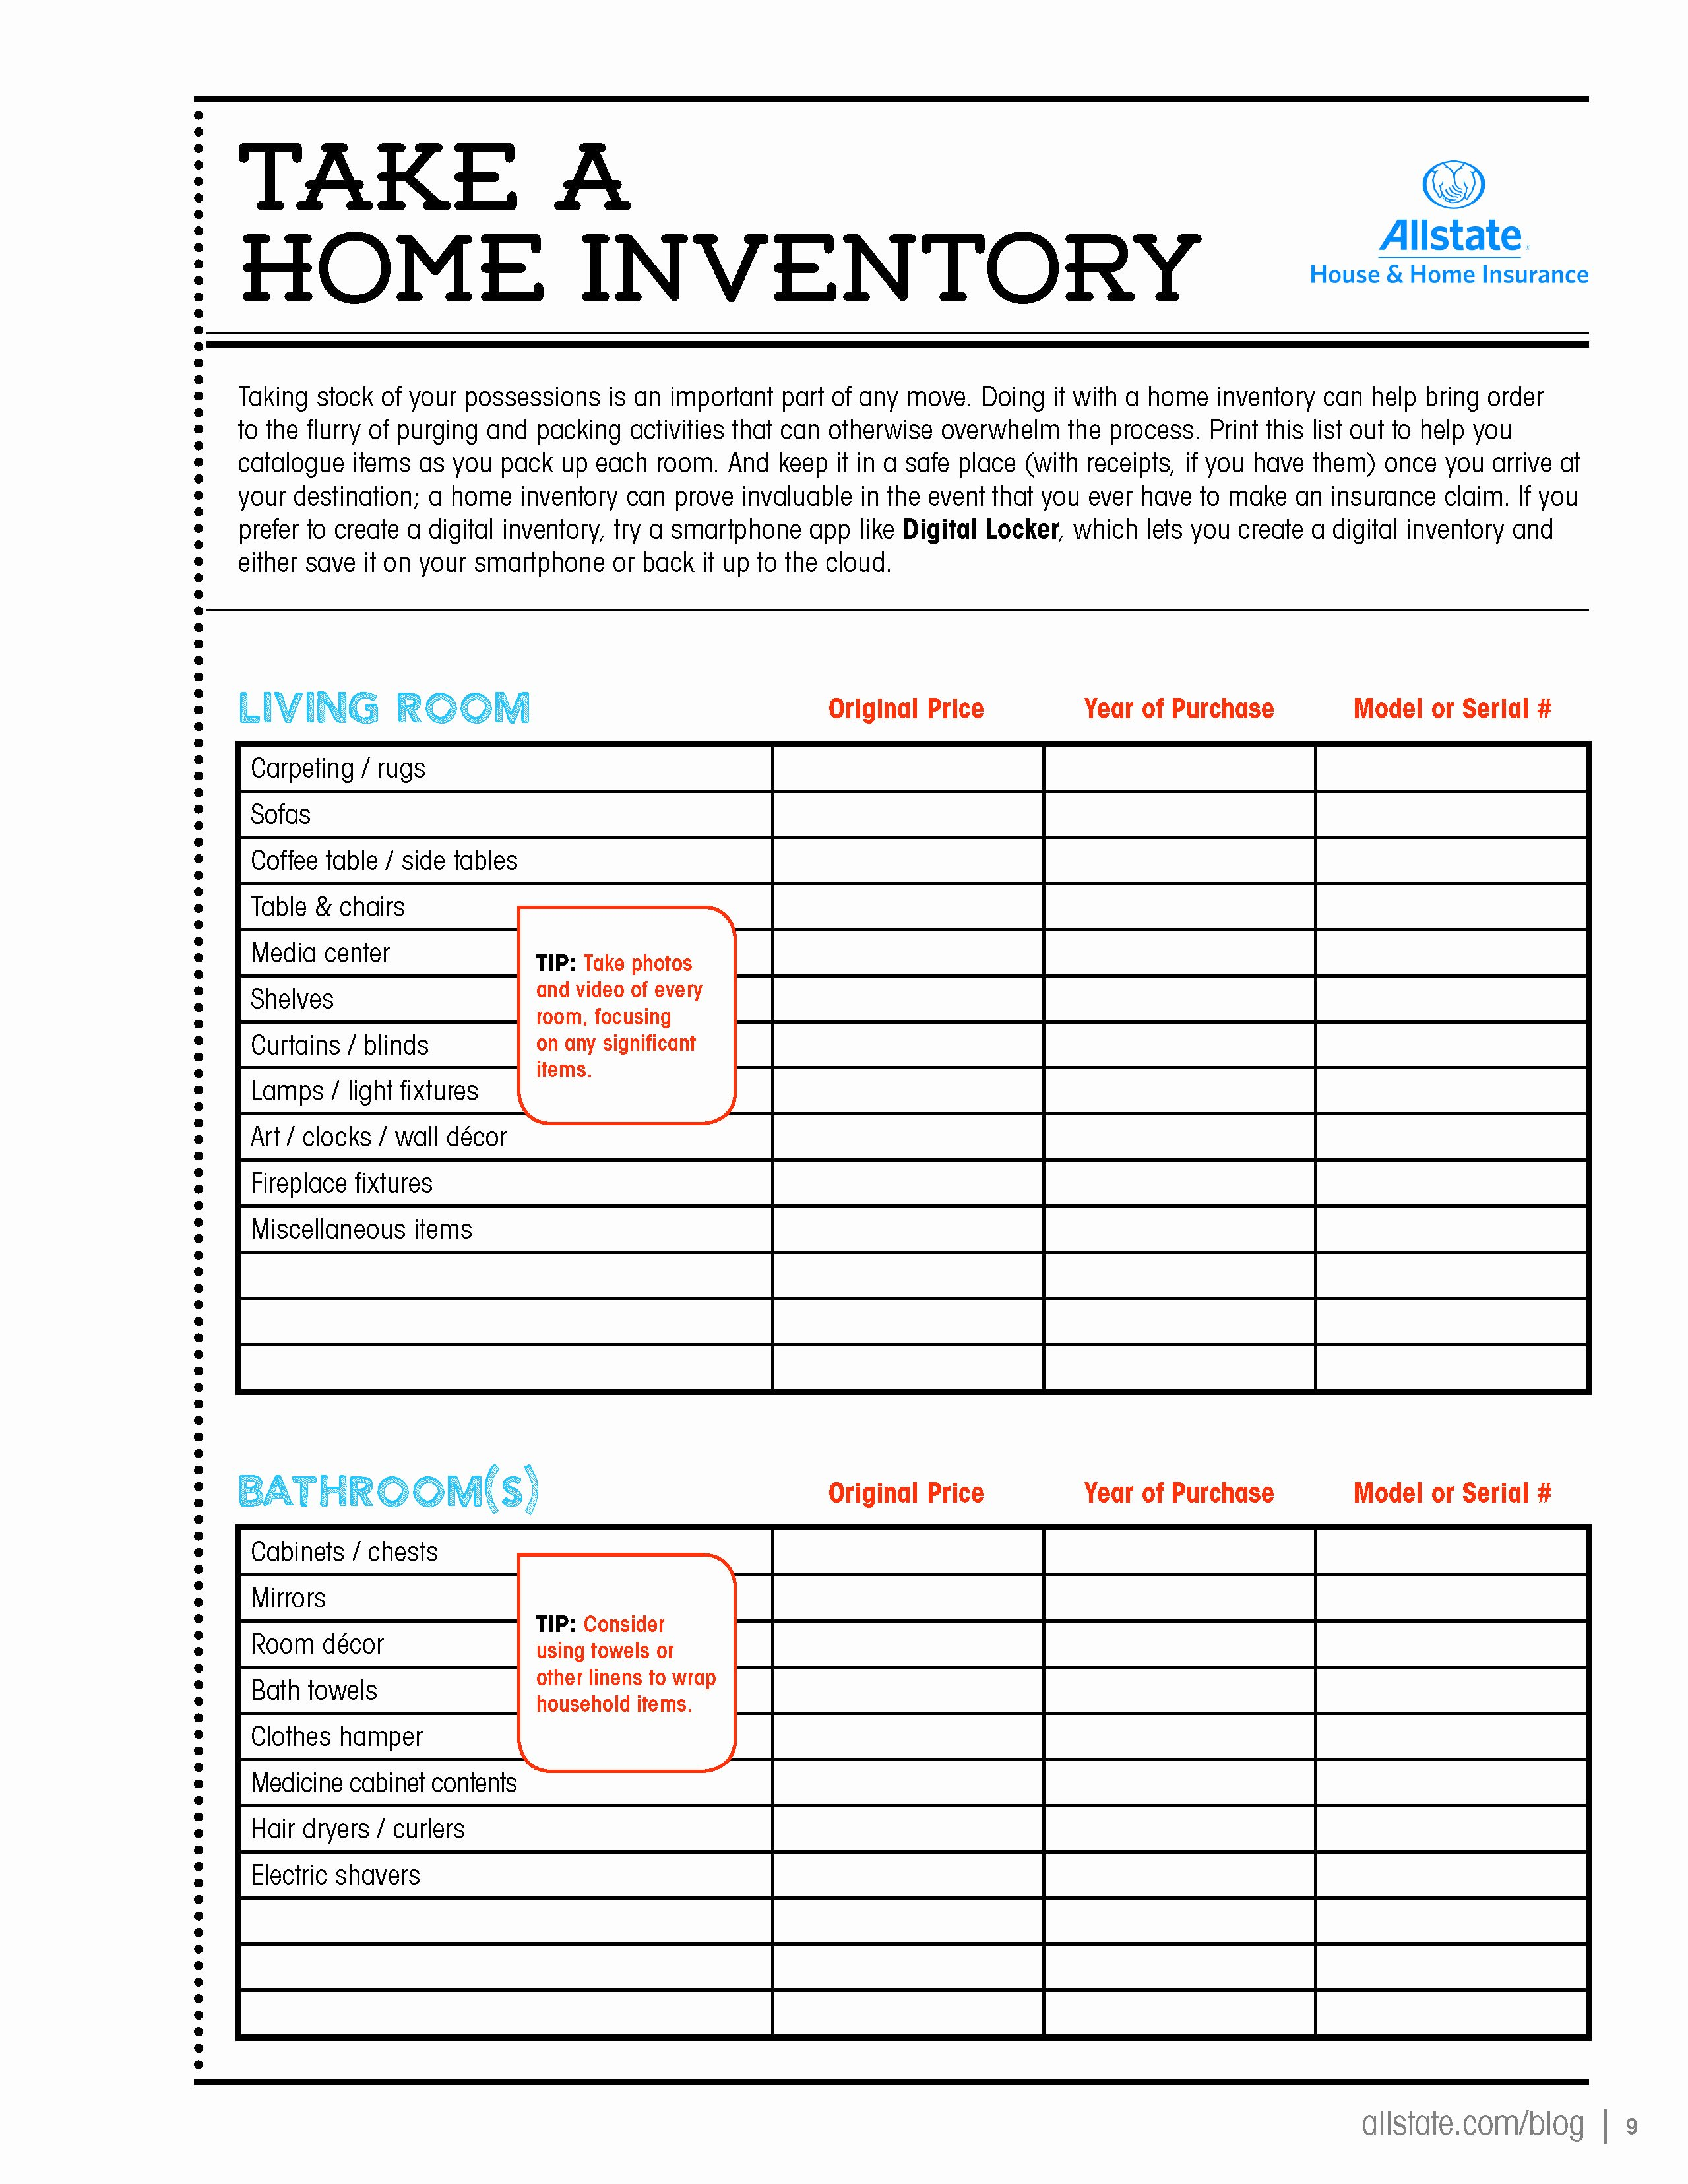 Moving Inventory List Template Fresh Take A Home Inventory Page 1 Of 5 Loveyourhome